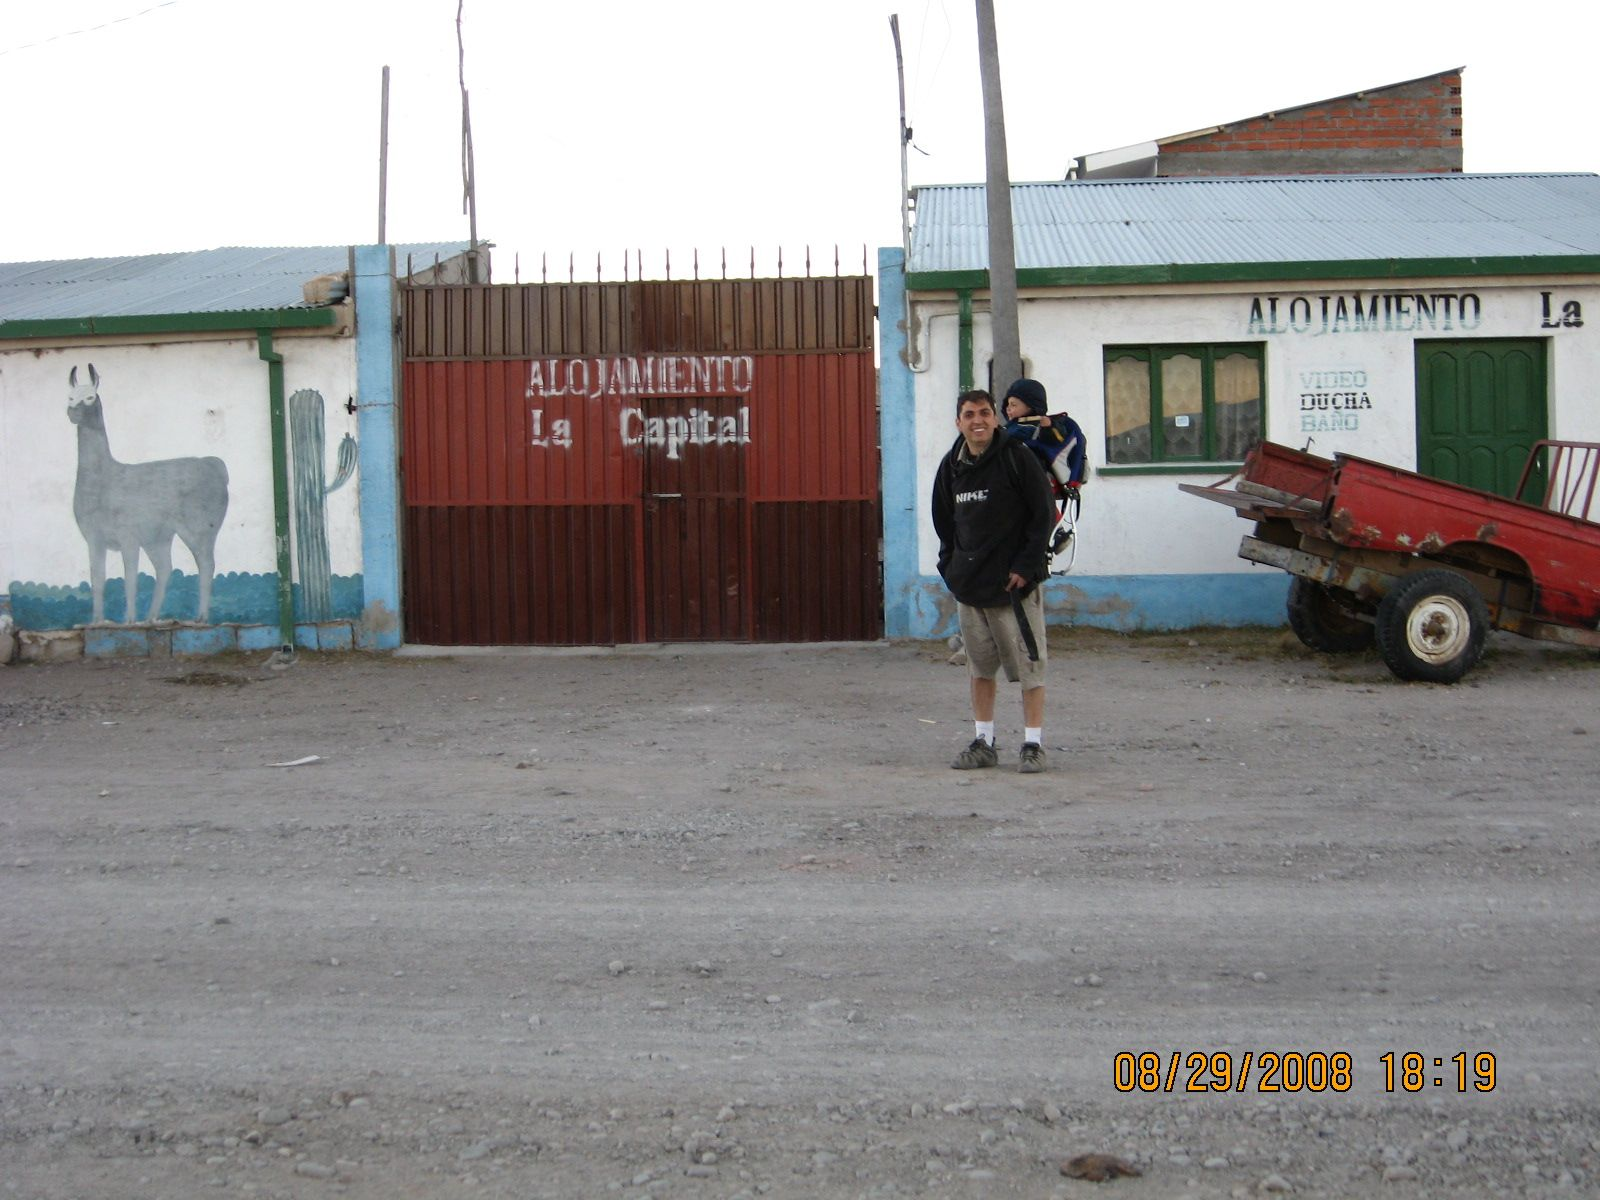 The place where we stayed in the rural community of Turco